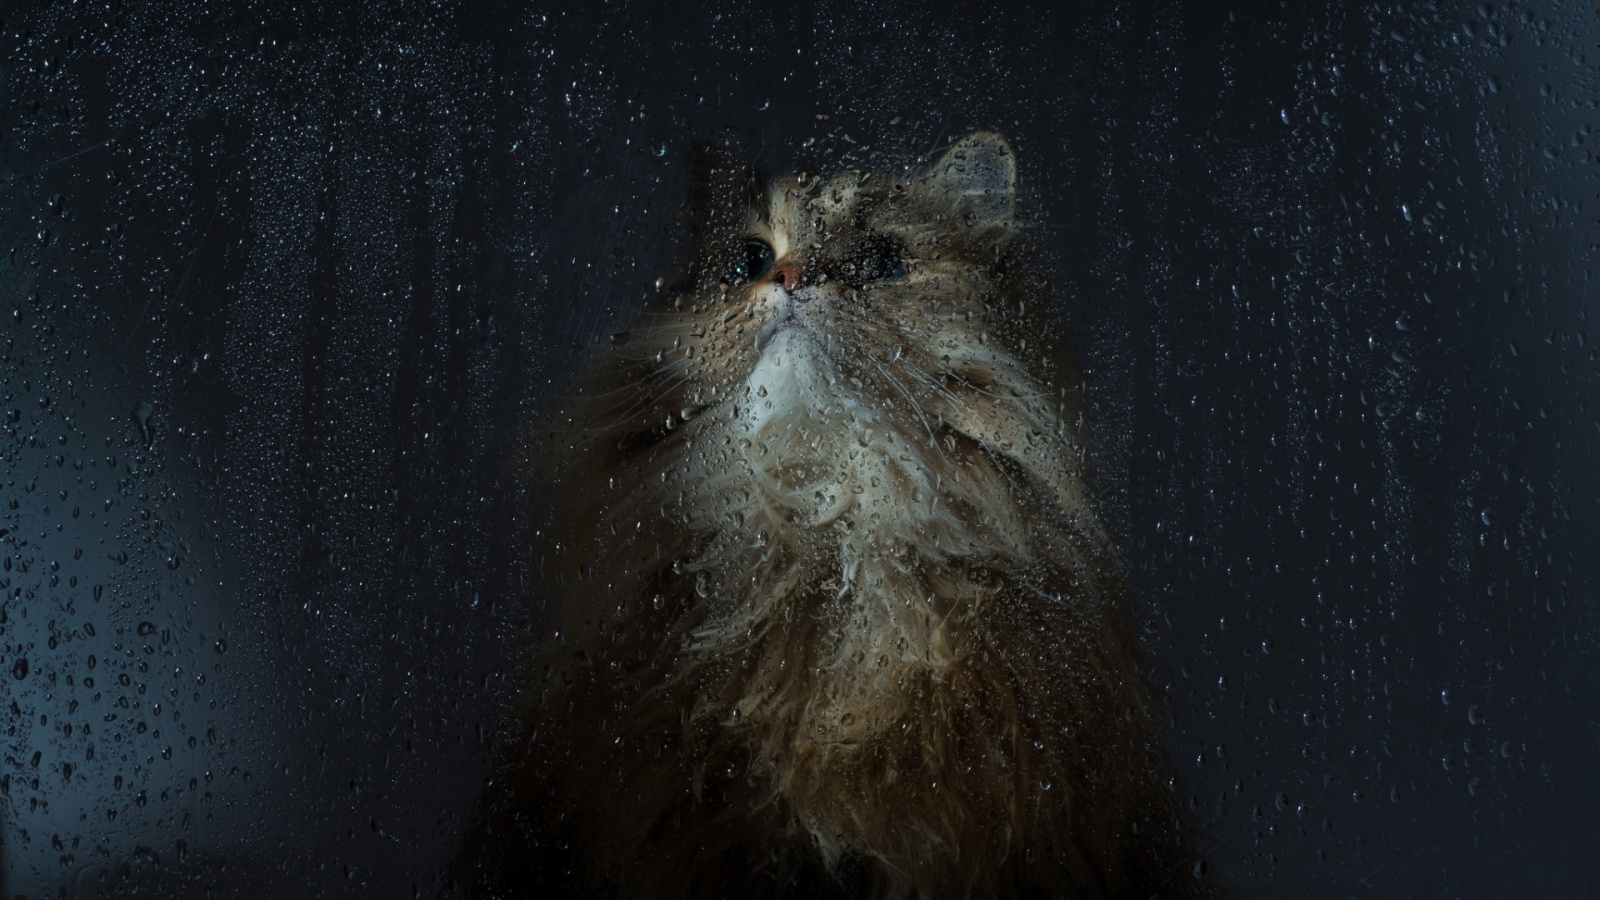 Cat wet window